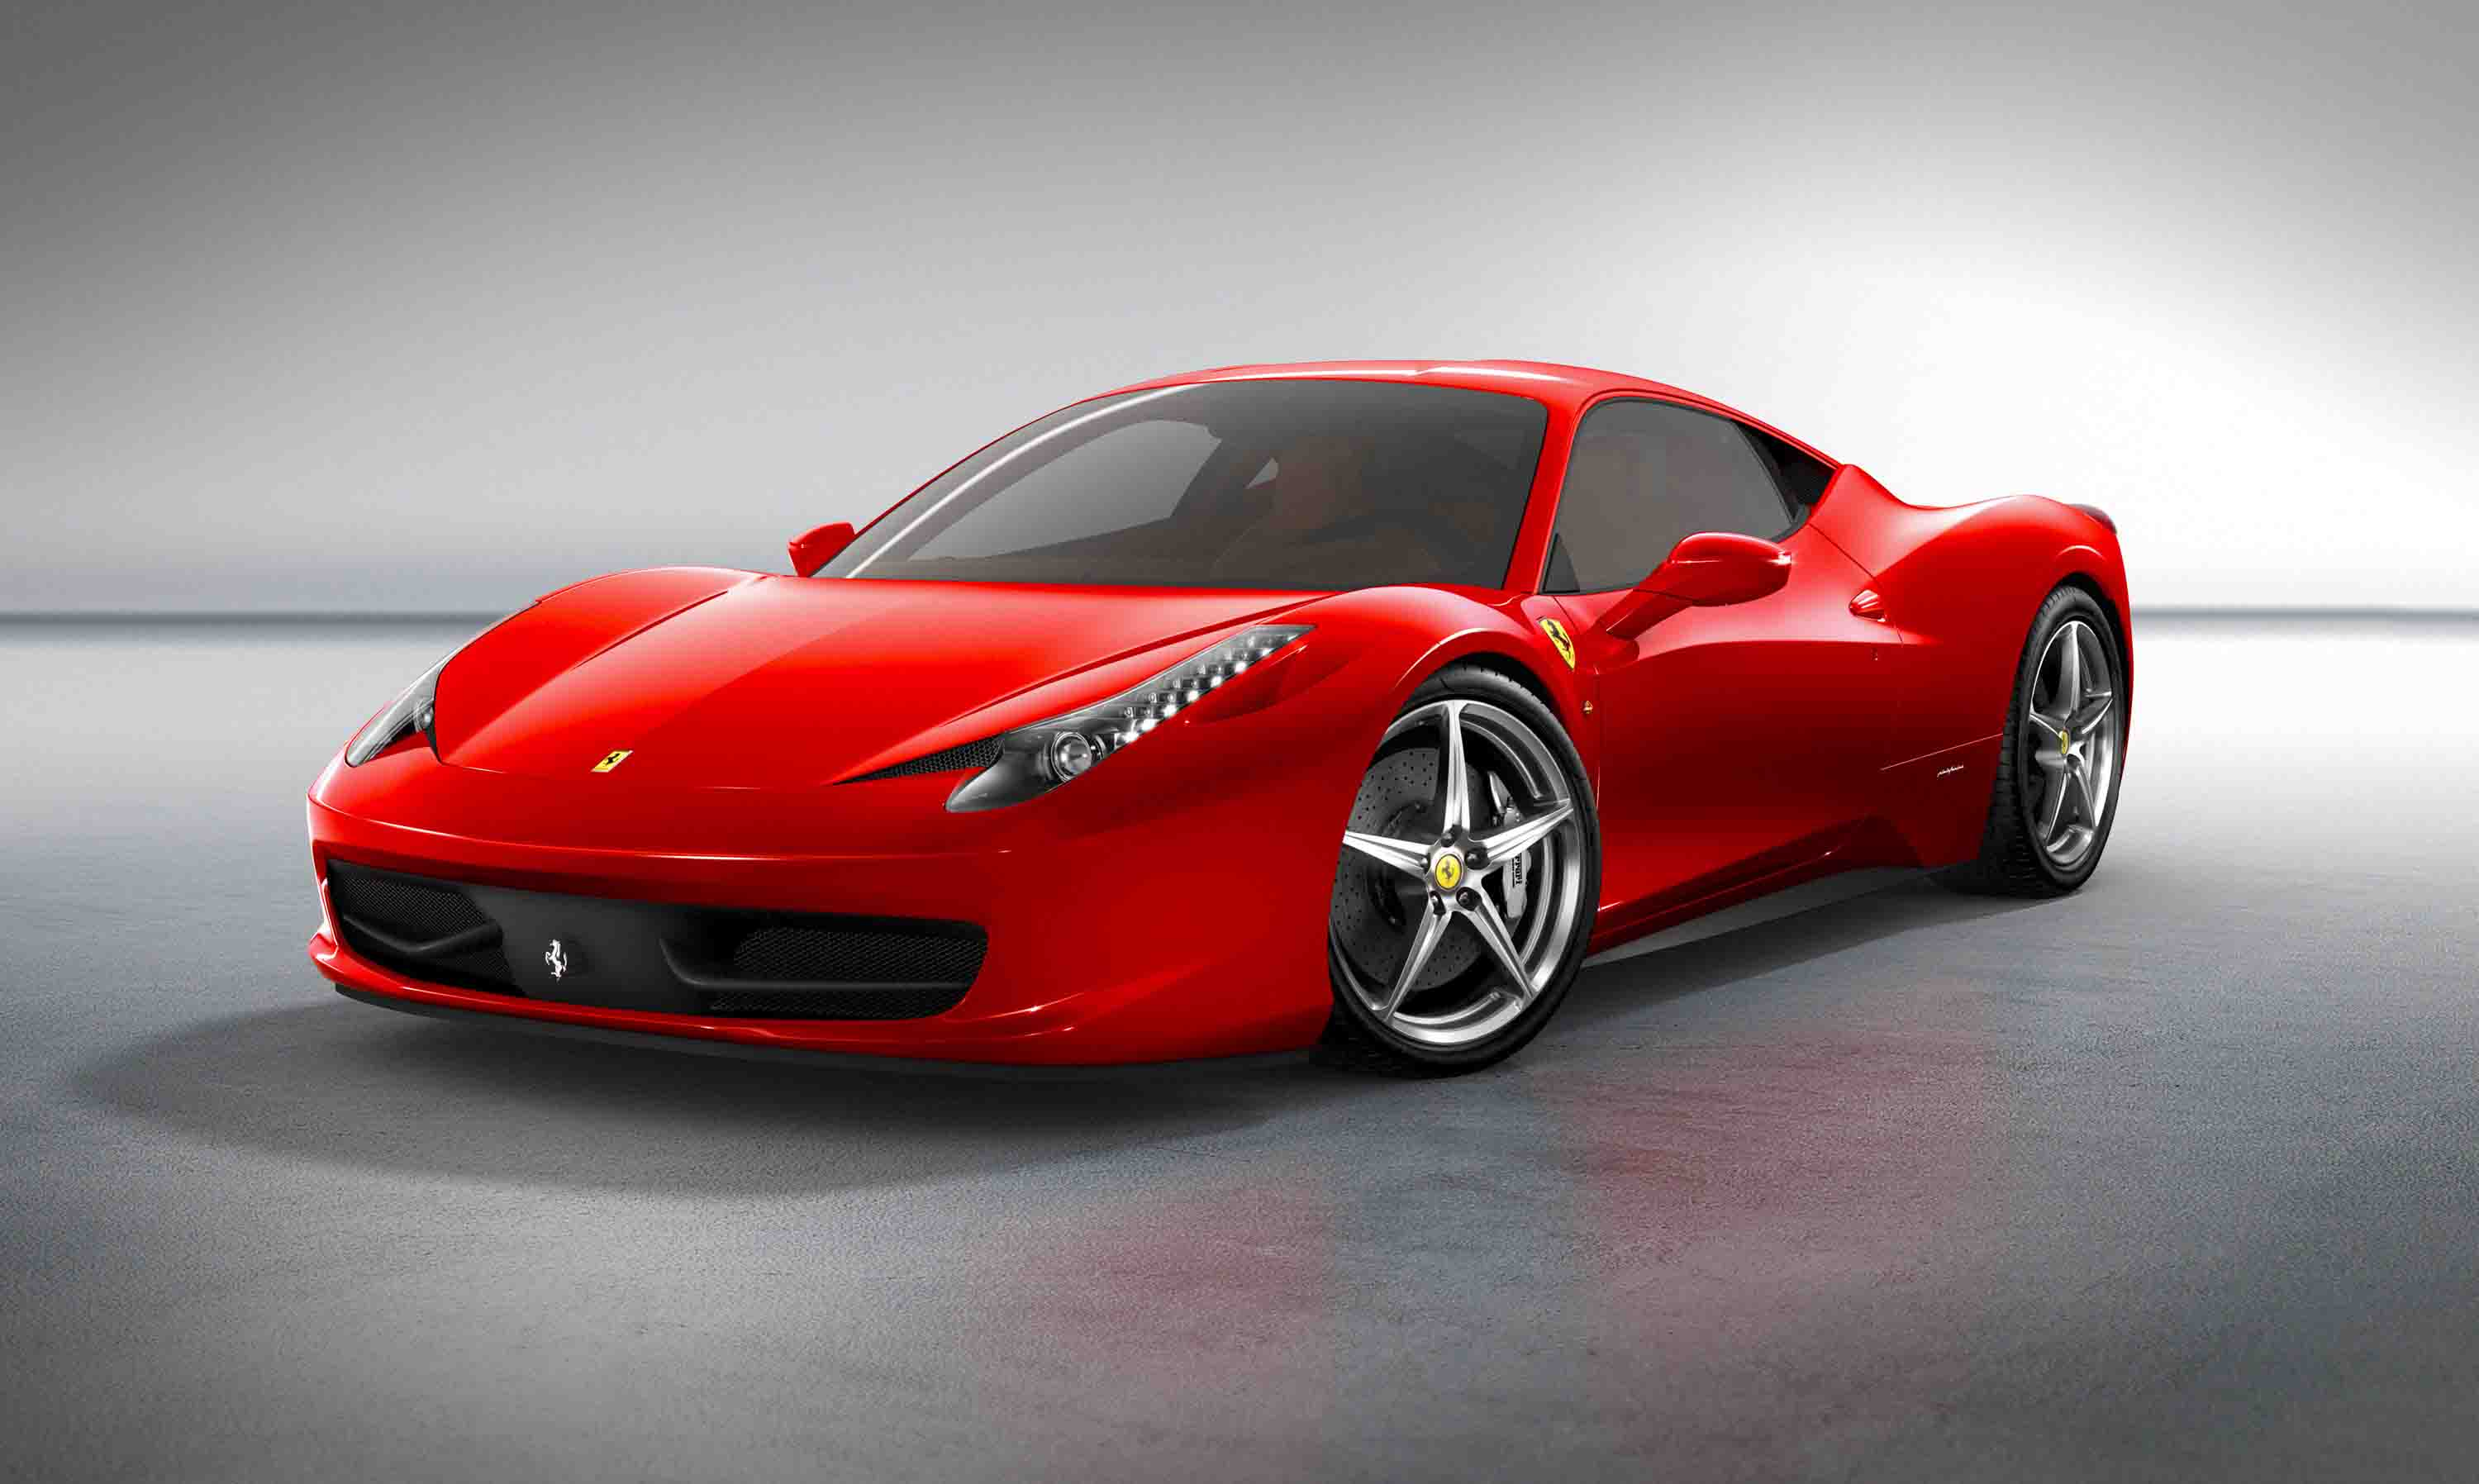 image voiture de sport ferrari. Black Bedroom Furniture Sets. Home Design Ideas